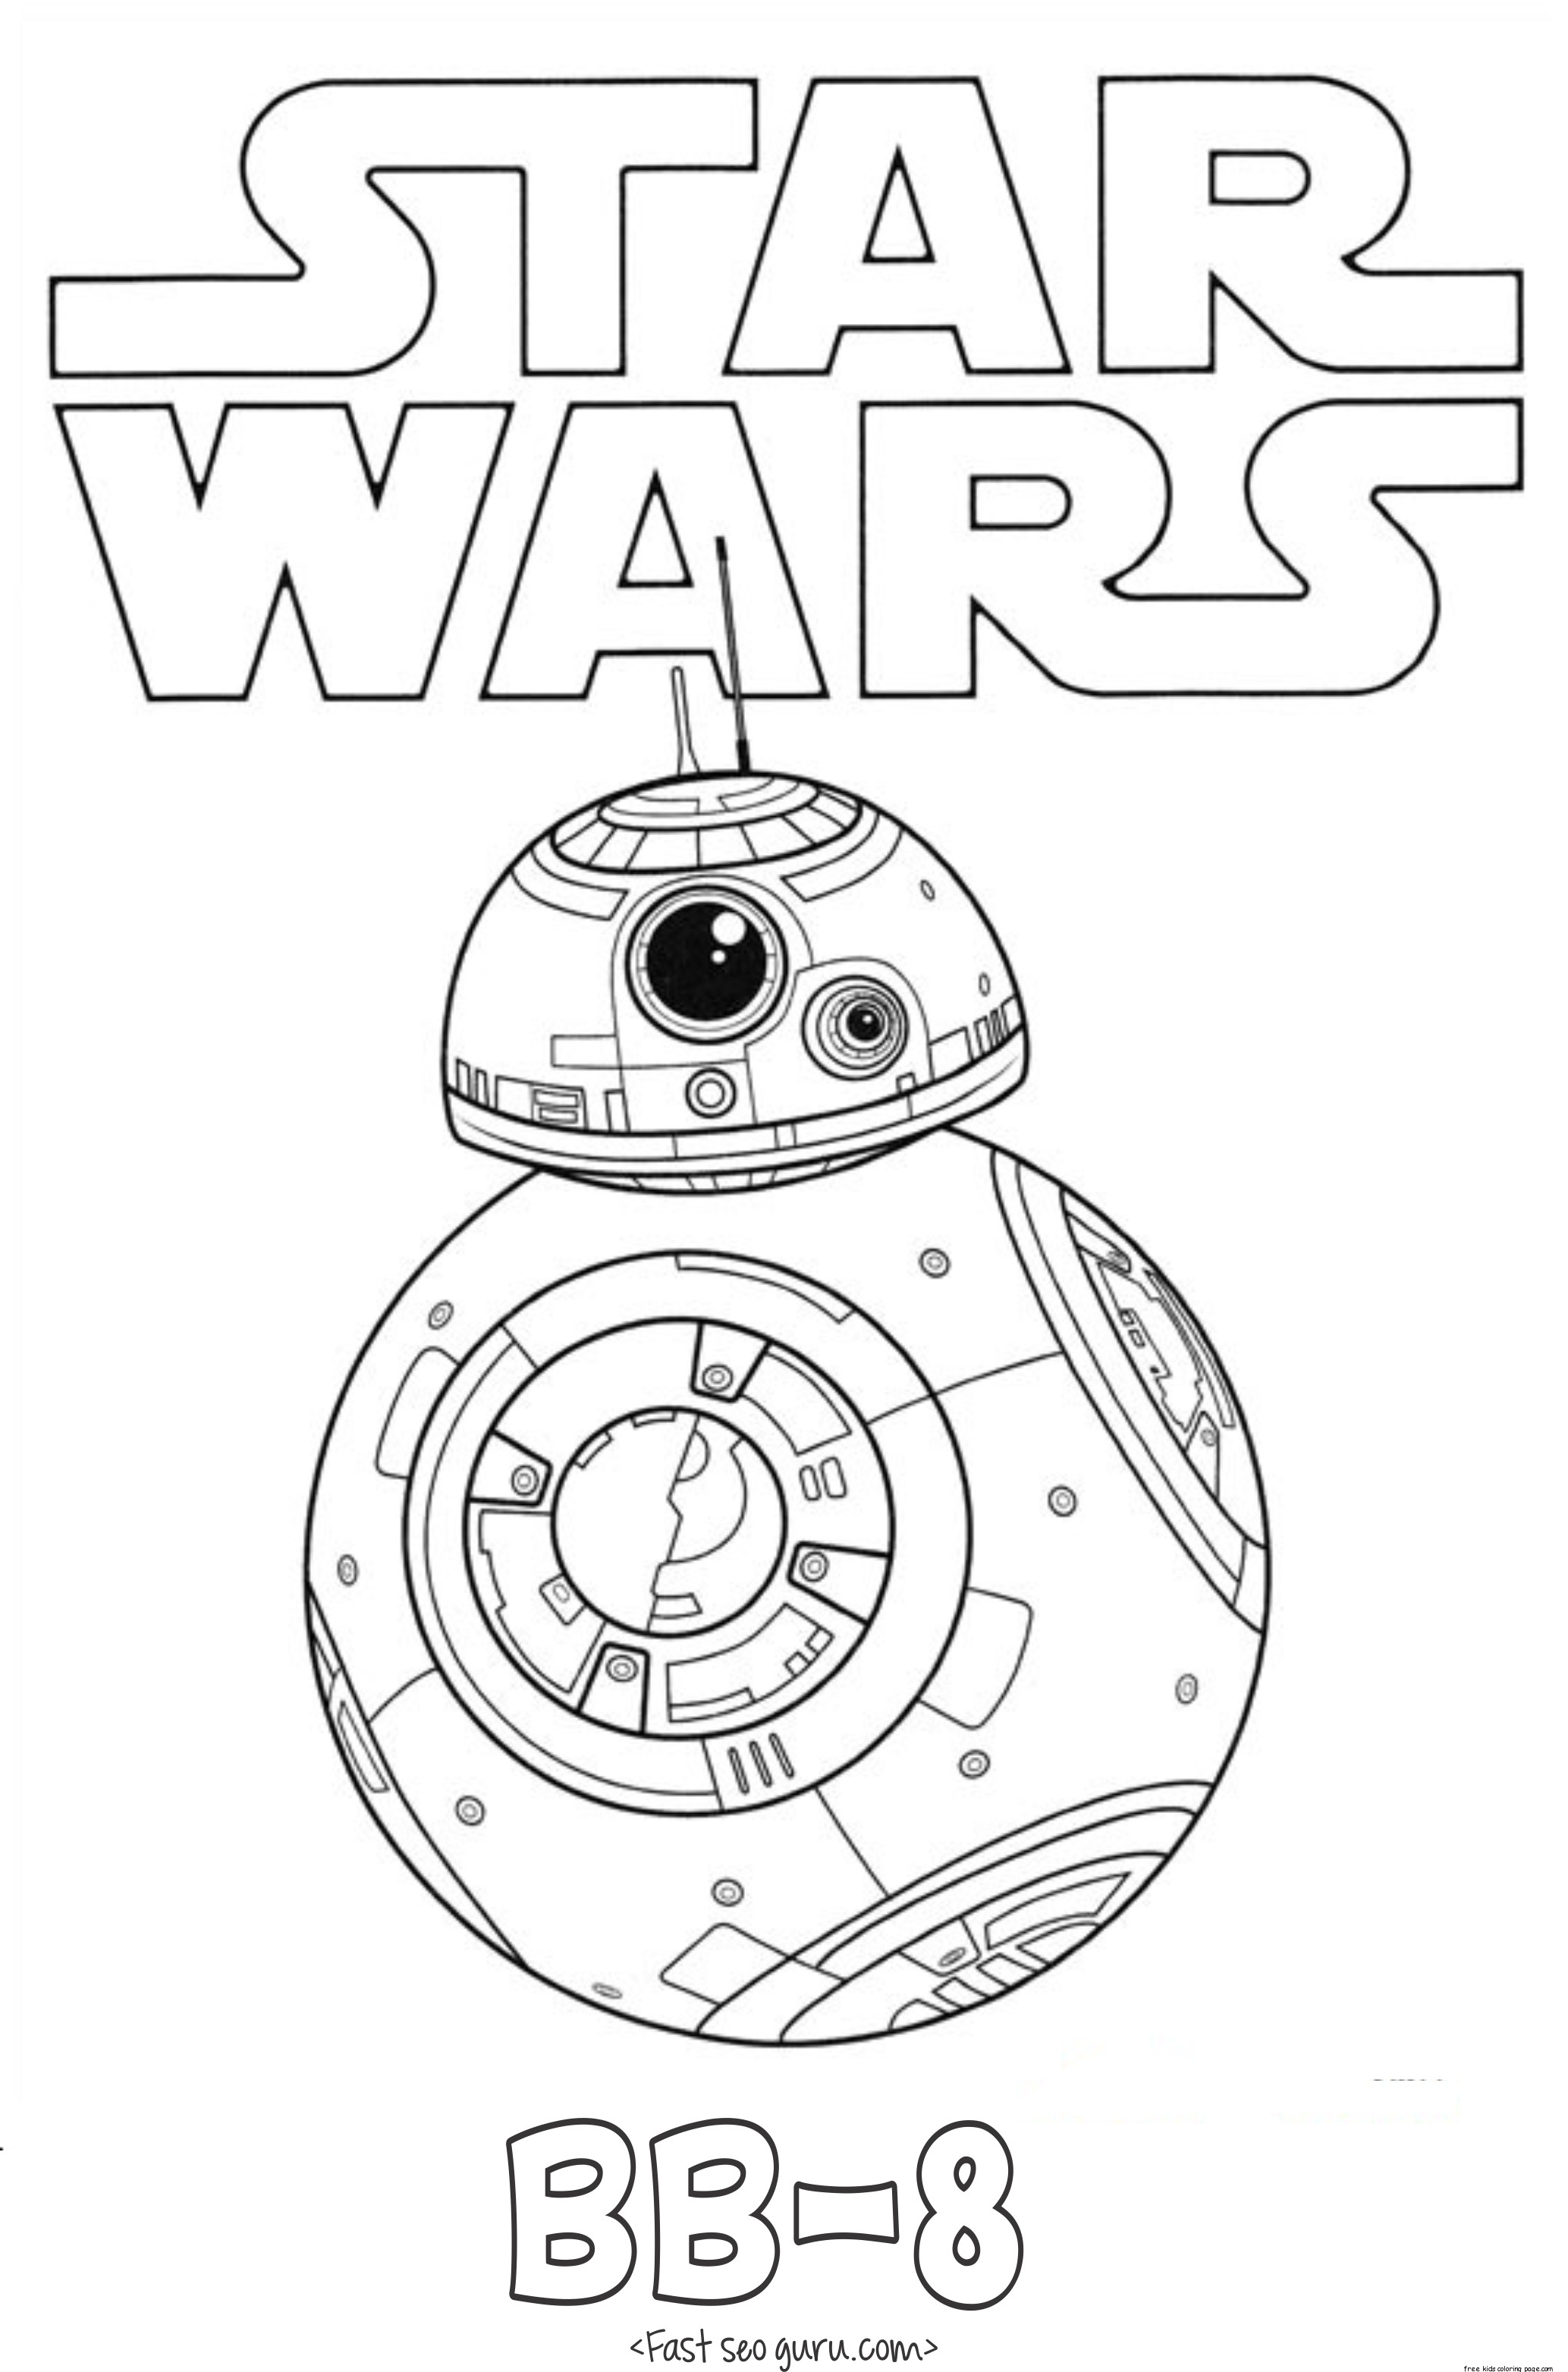 Star wars coloring pictures